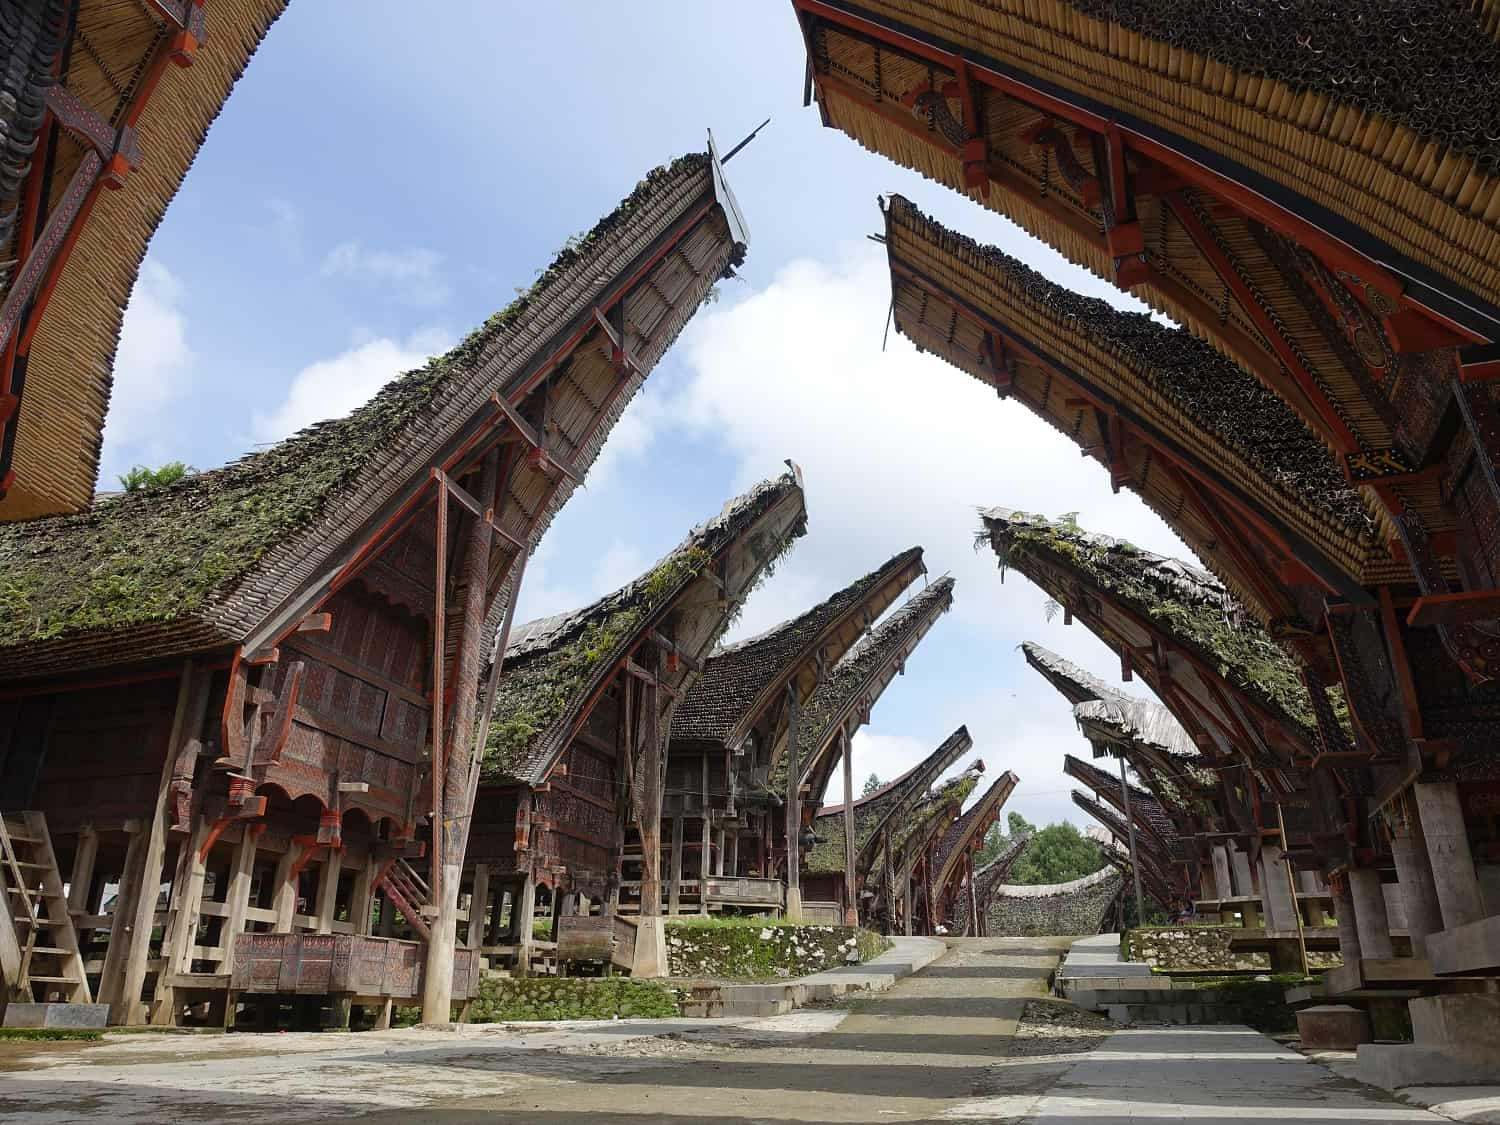 Toraja tongkonan - traditional clan houses